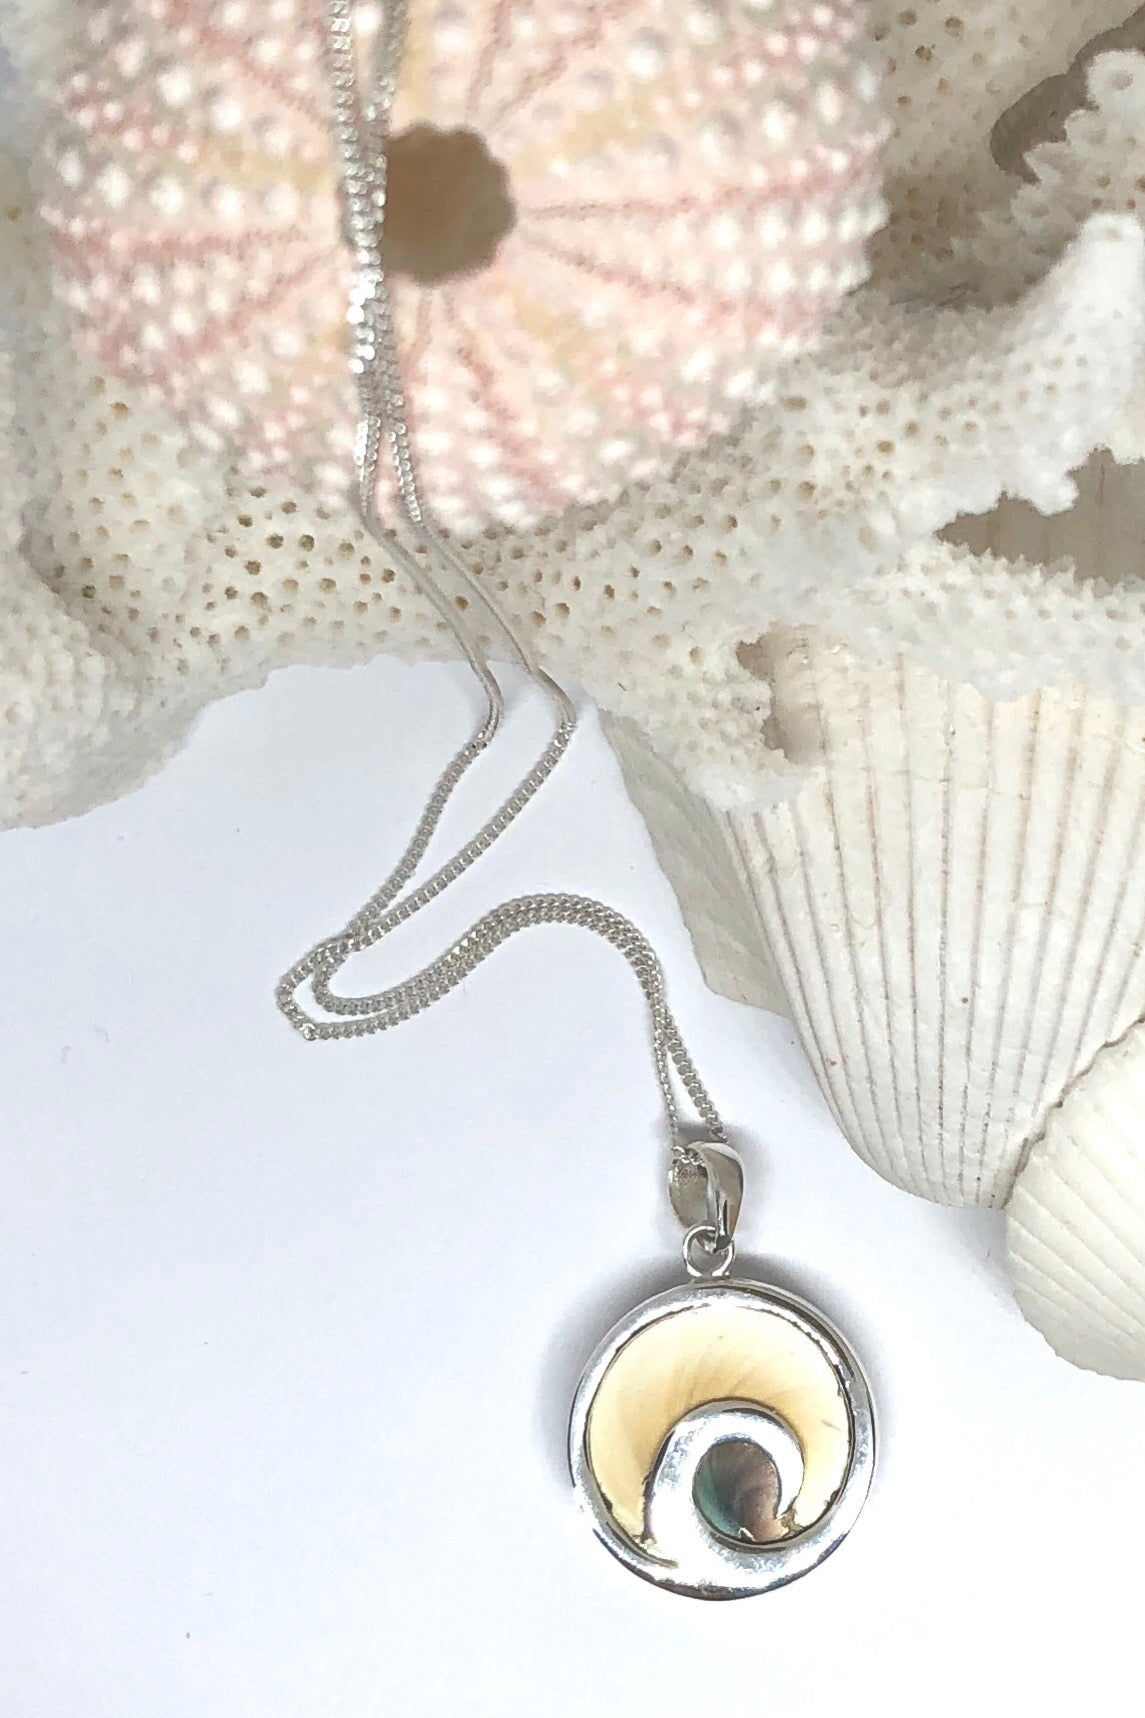 This darling Pendant Shiva Shell, known as the third eye, comes on a 925 silver chain, featuring approximate 2cm in length, 925 solid silver surround, delicate little round Shiva shell design.